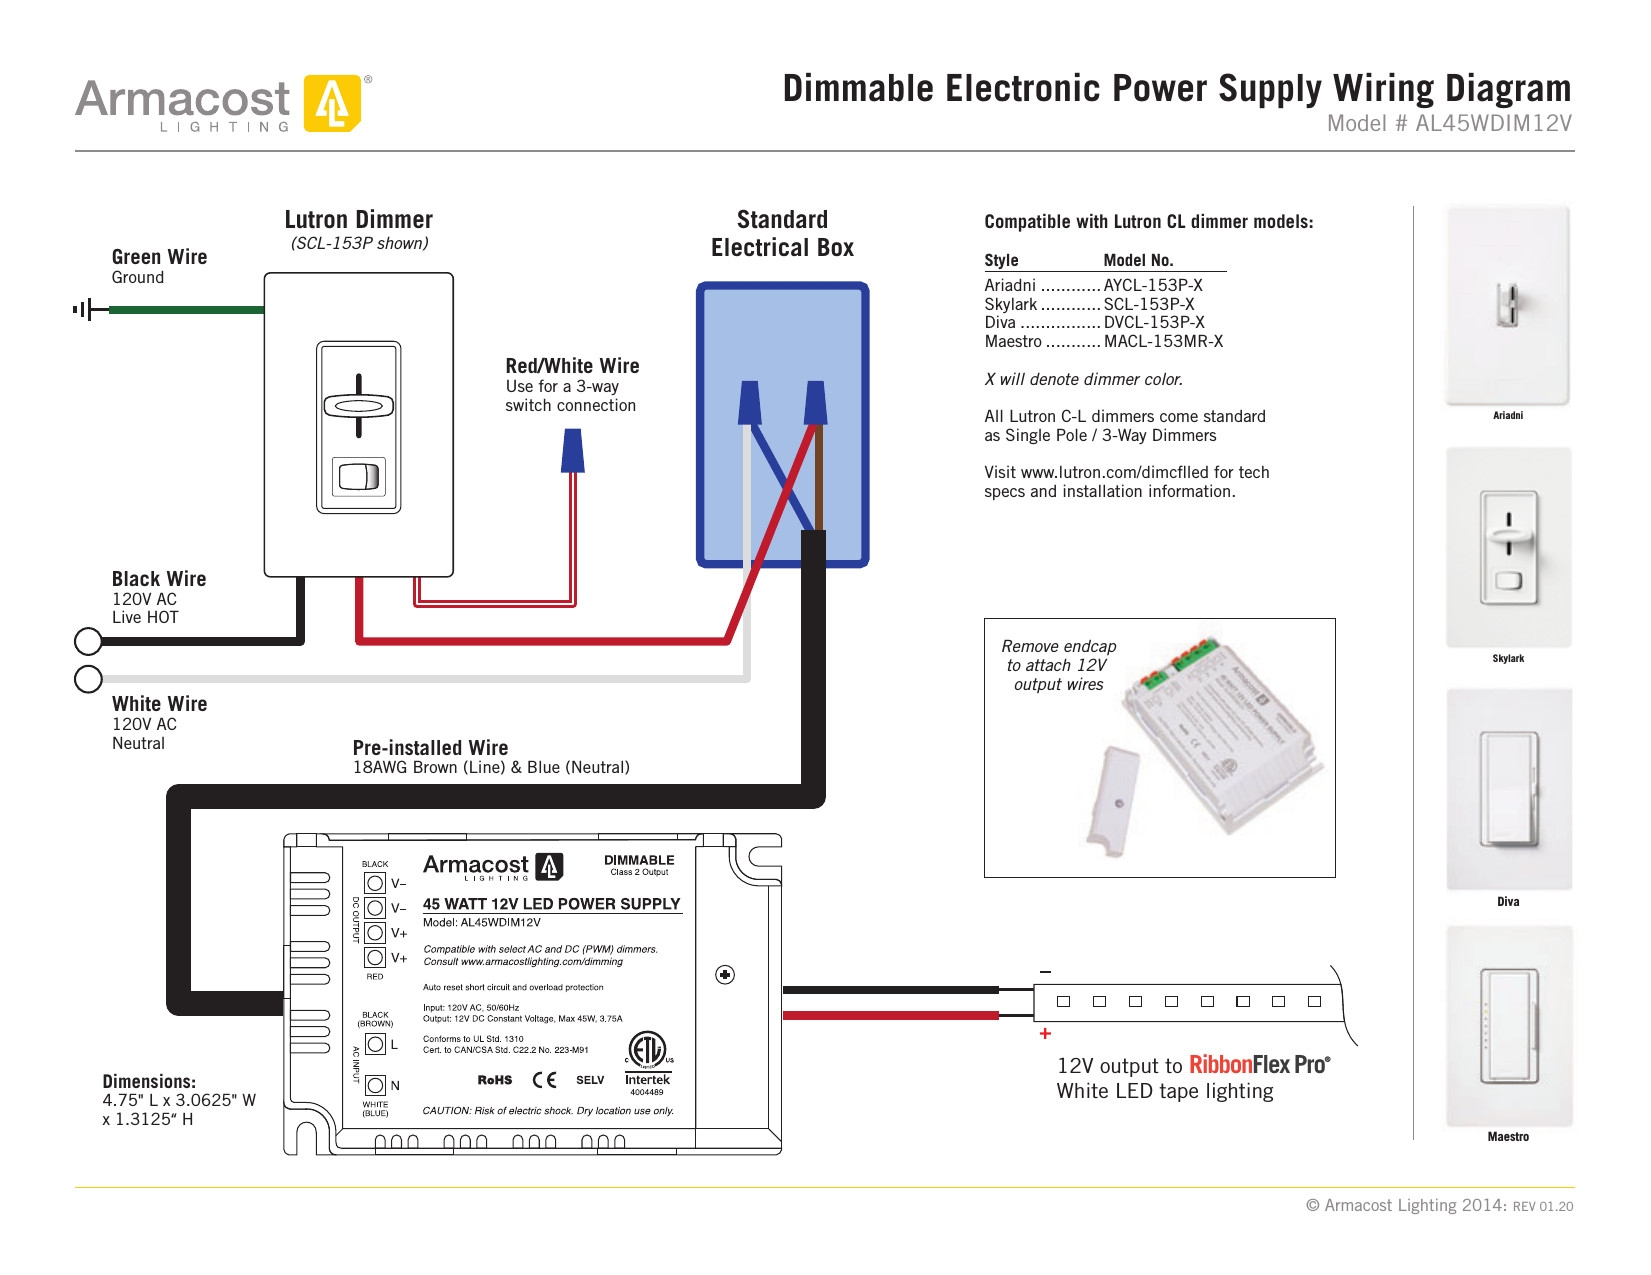 lutron maestro dimmer wiring diagram Download-lutron maestro led dimmer wiring diagram Collection Lutron Led Dimmer Switch Wiring Diagram Beautiful Lutron 14-d